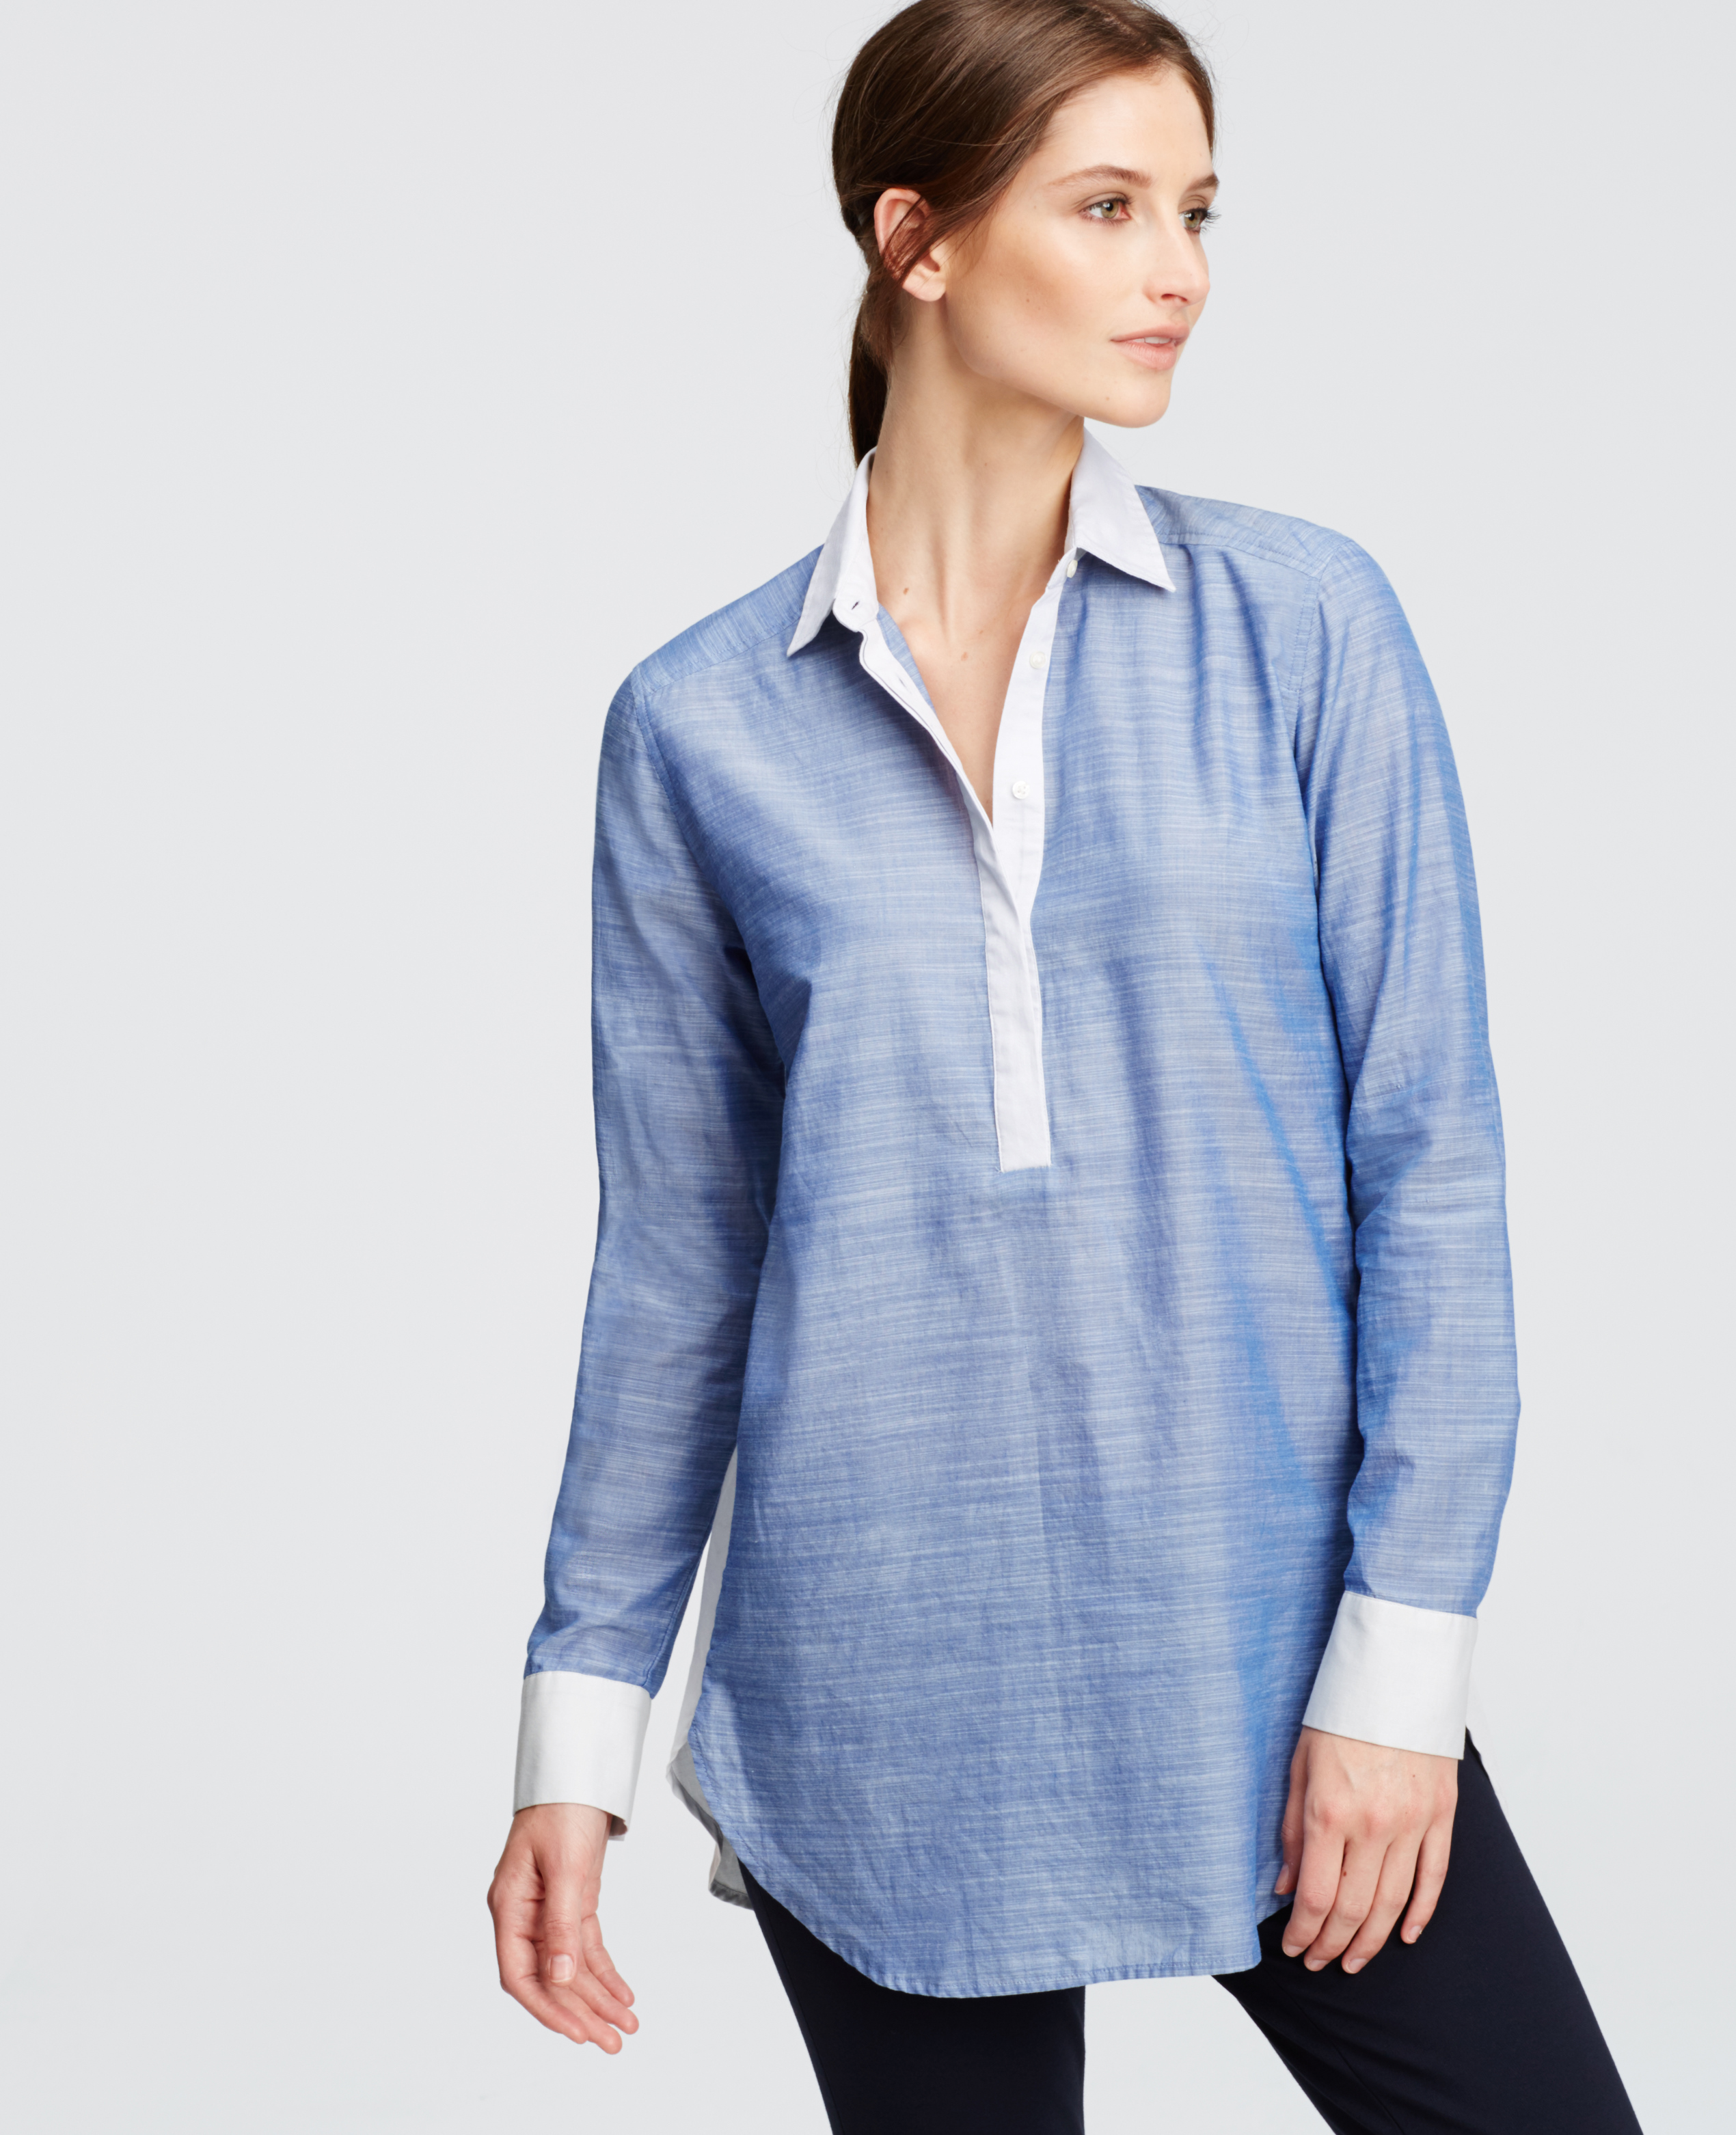 Shop Madewell for Women's Chambray & Denim and see our entire selection of Workshirts & Boyshirts. Free Shipping and free returns for Madewell Insiders. Madewell! Skip to Main Content Chambray Classic Ex-Boyfriend Shirt in Mazzy Wash $ Central Shirt in Roberta Indigo $ Denim Western Shirt $ Top Rated Denim Short-Sleeve.